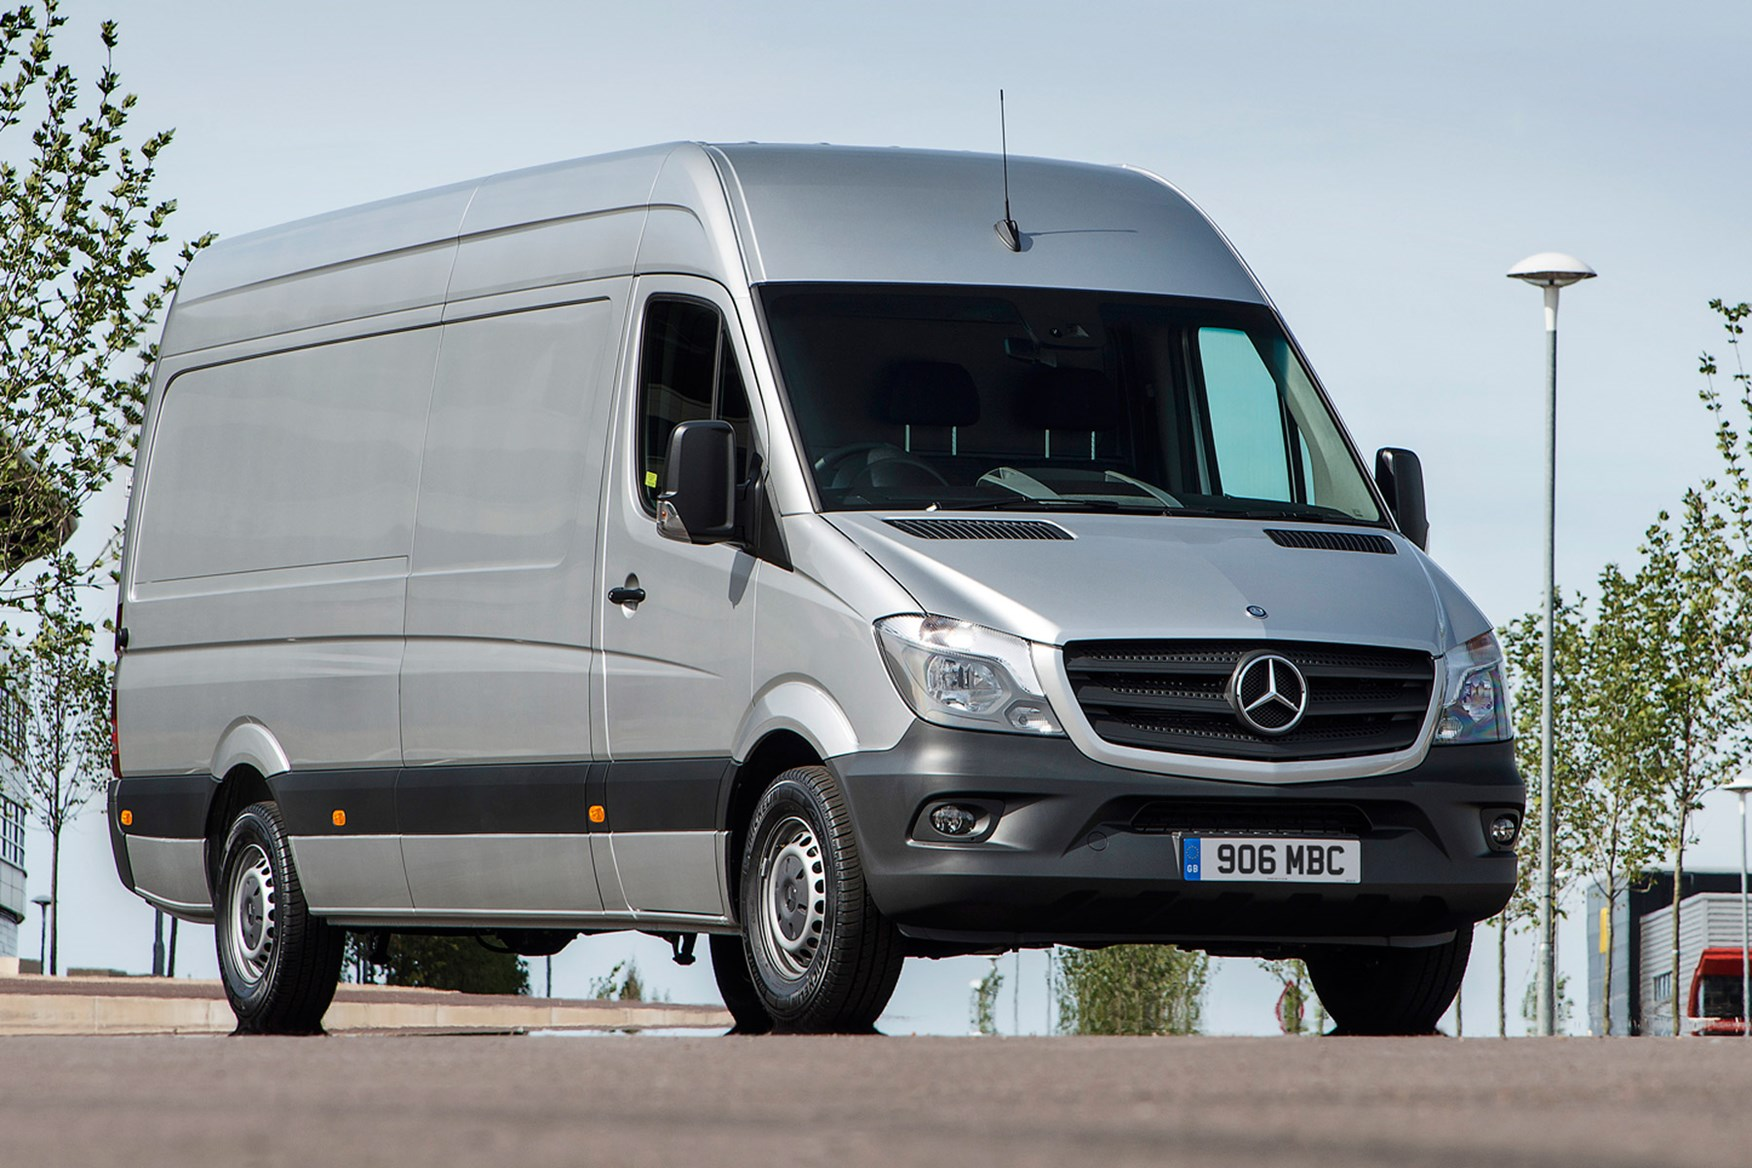 Mercedes-Benz Sprinter full review on Parkers Vans - exterior